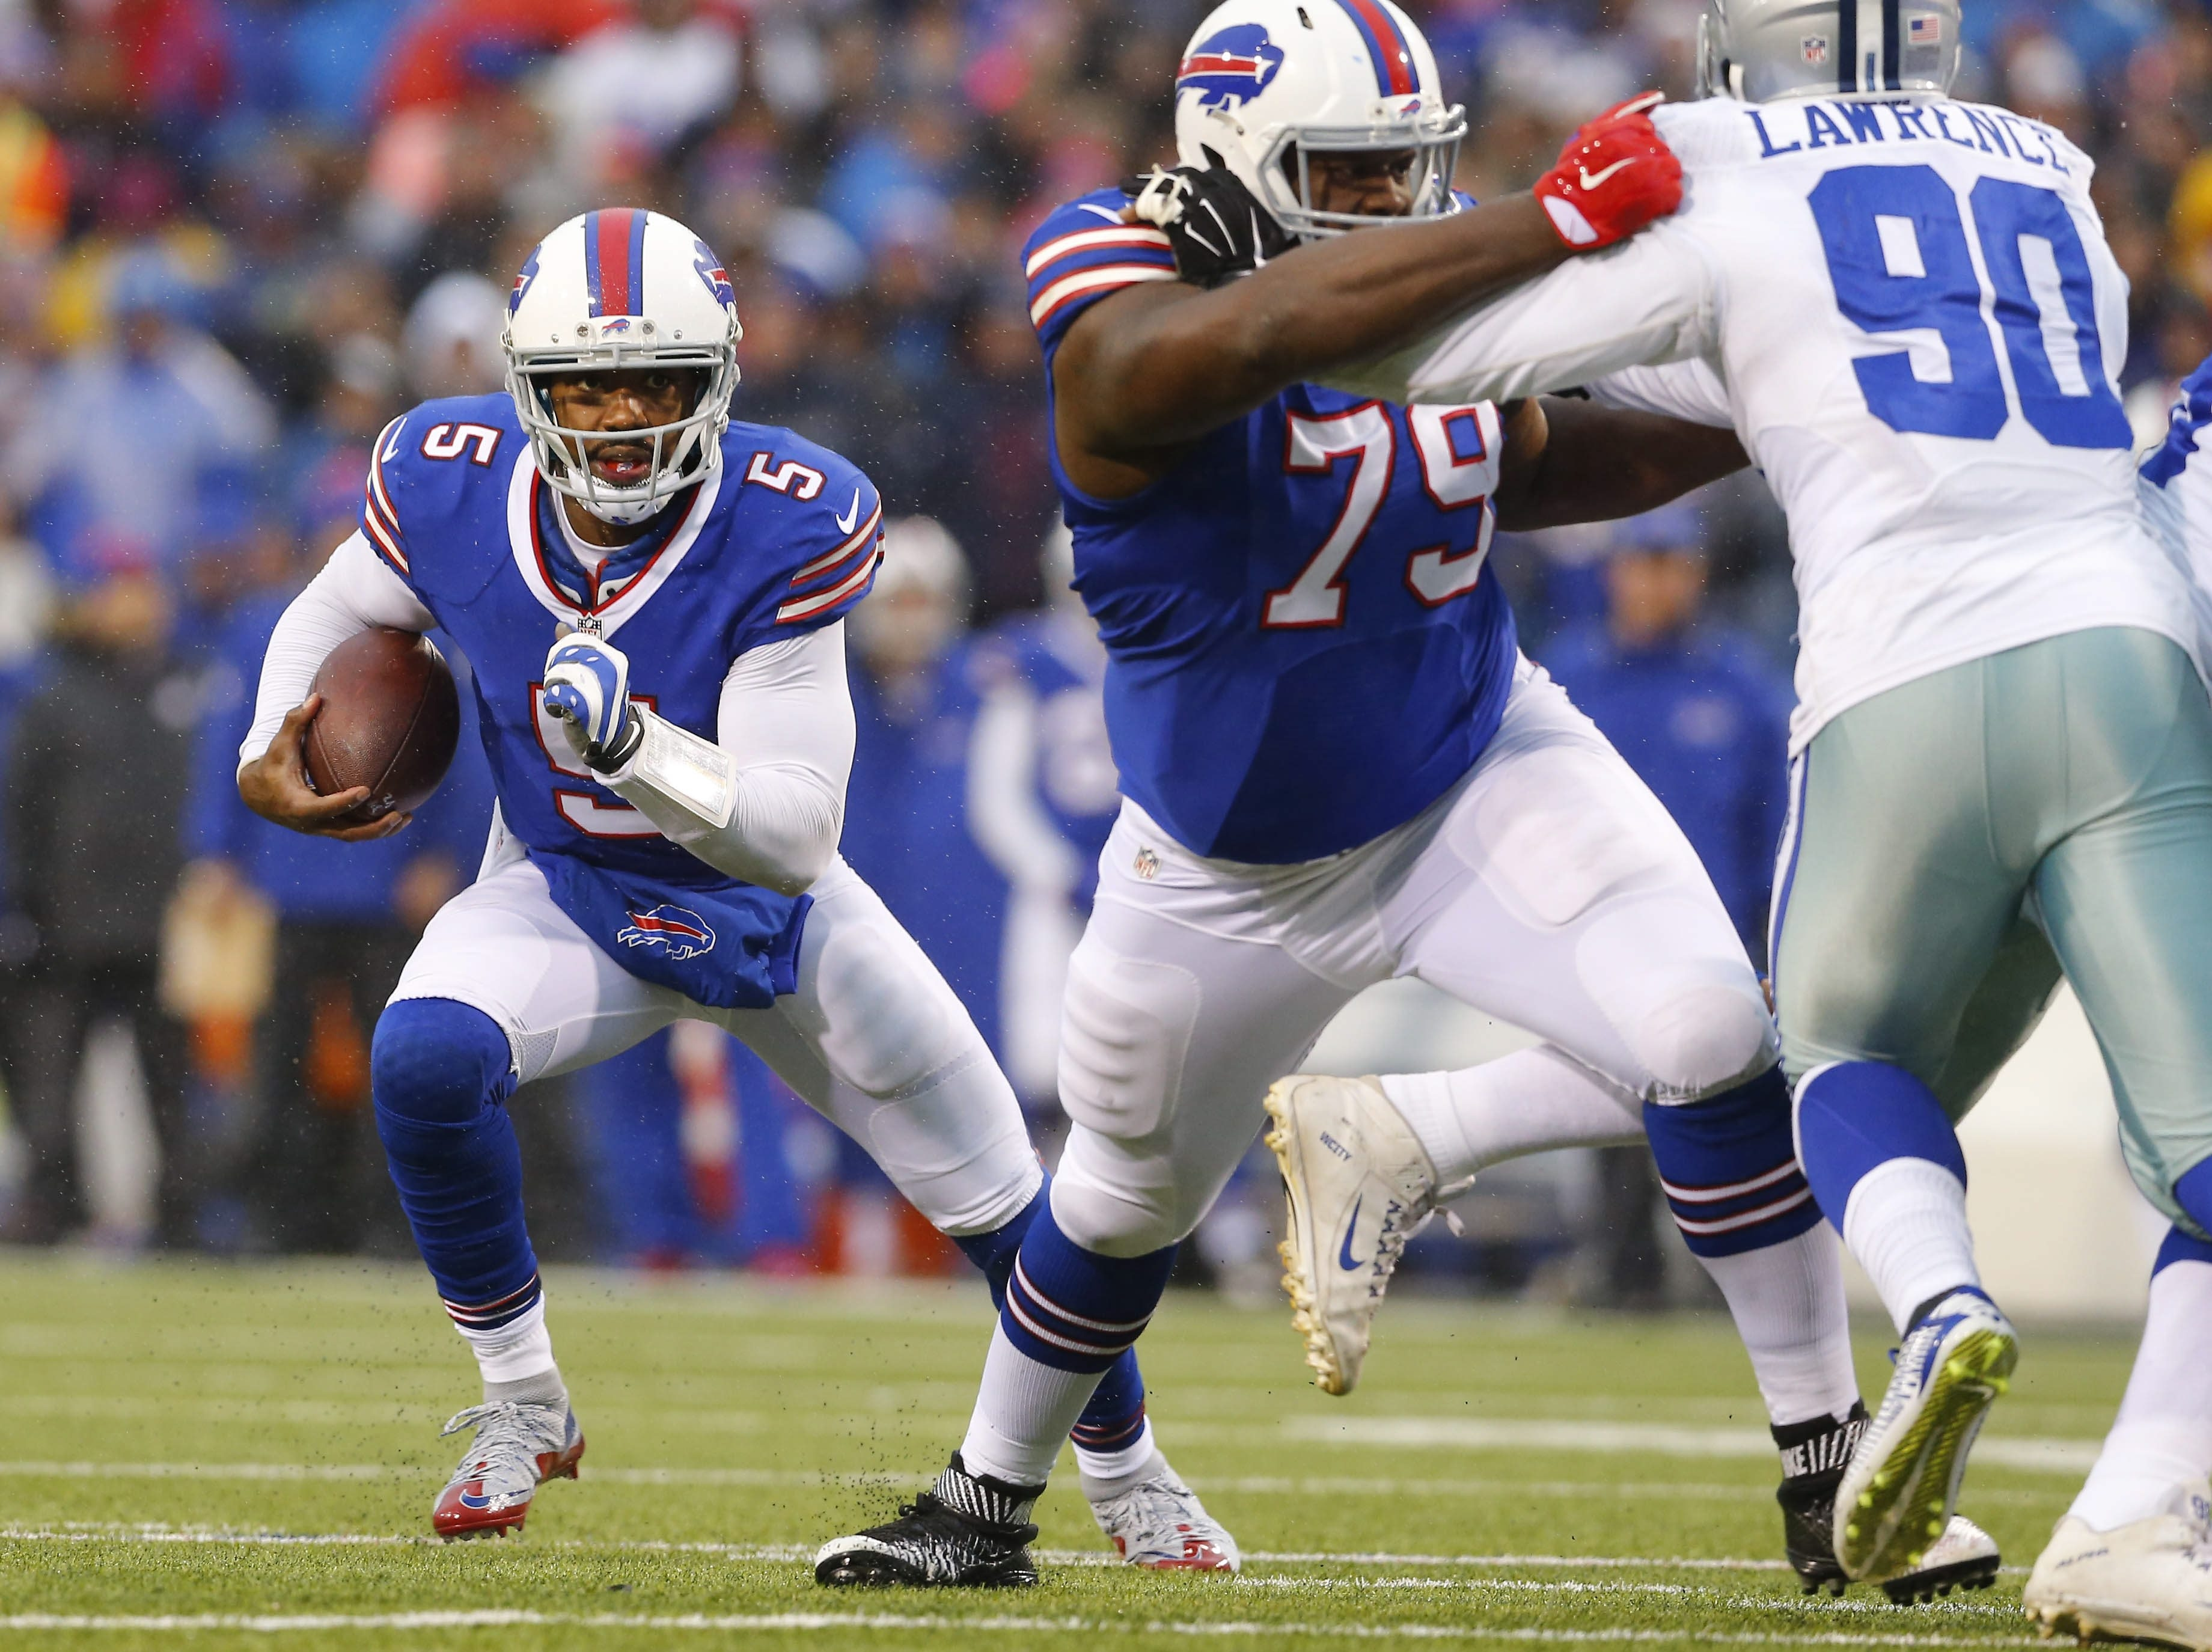 The Bills' Tyrod Taylor makes a run in the second quarter of the game in Orchard Park Sunday, December 27, 2015.  ()